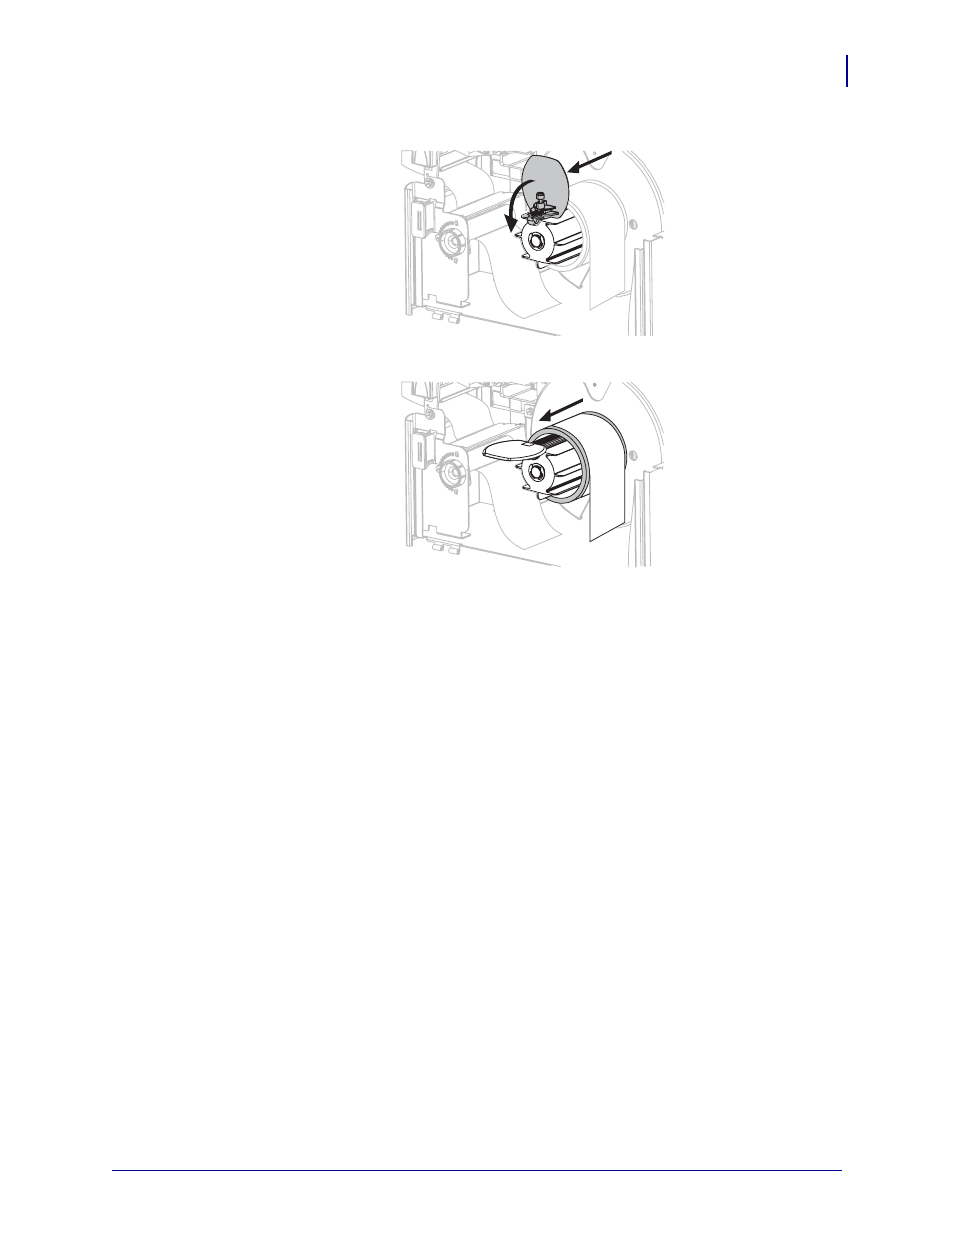 zebra zm400 user manual page 105 146 original mode also for rh manualsdir com zebra zm600 user manual pdf Zebra ZM600 Troubleshooting